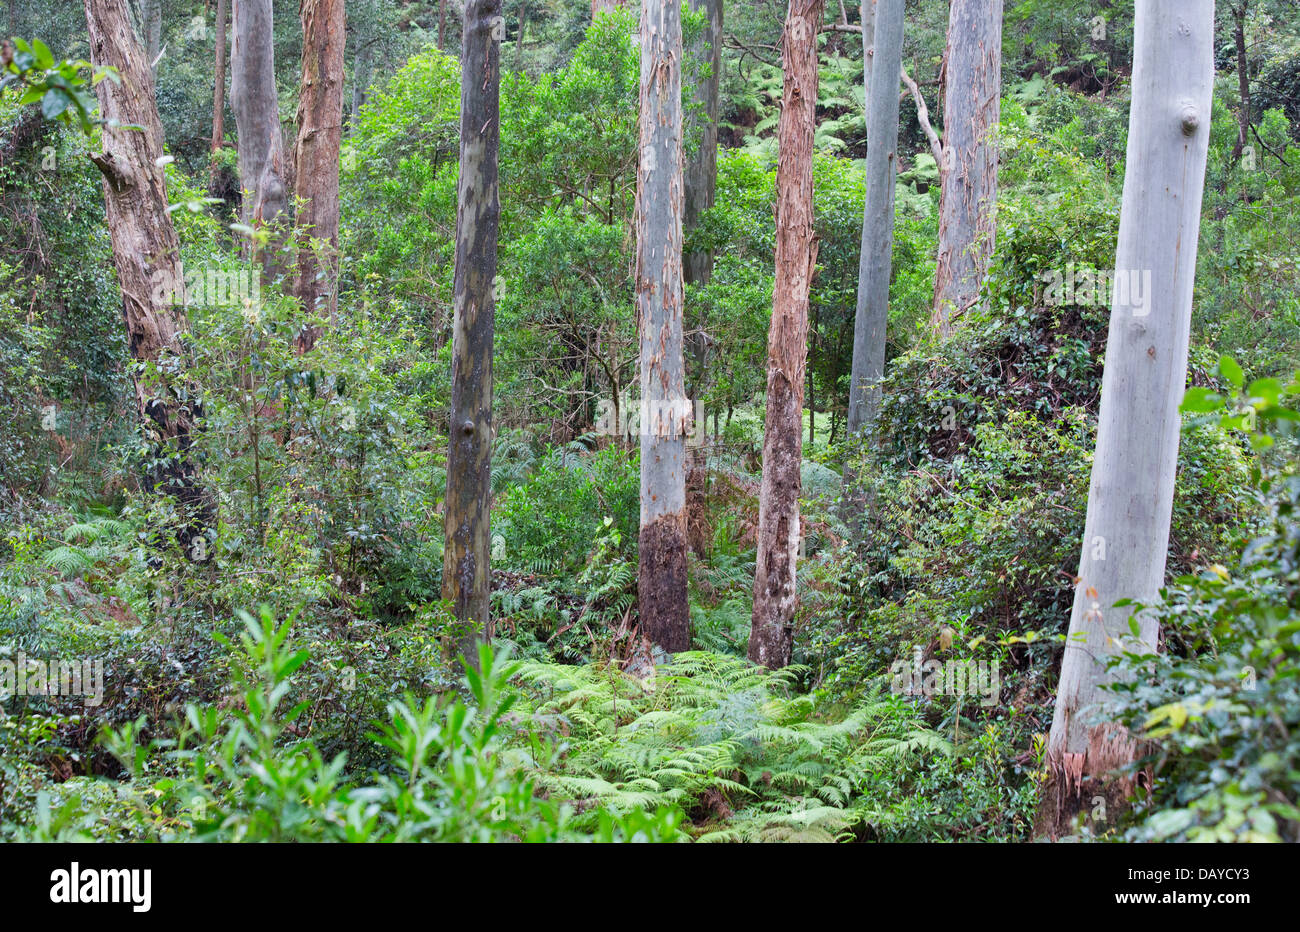 Tall wet eucalypt forest in Dharug National Park, NSW, Australia - Stock Image